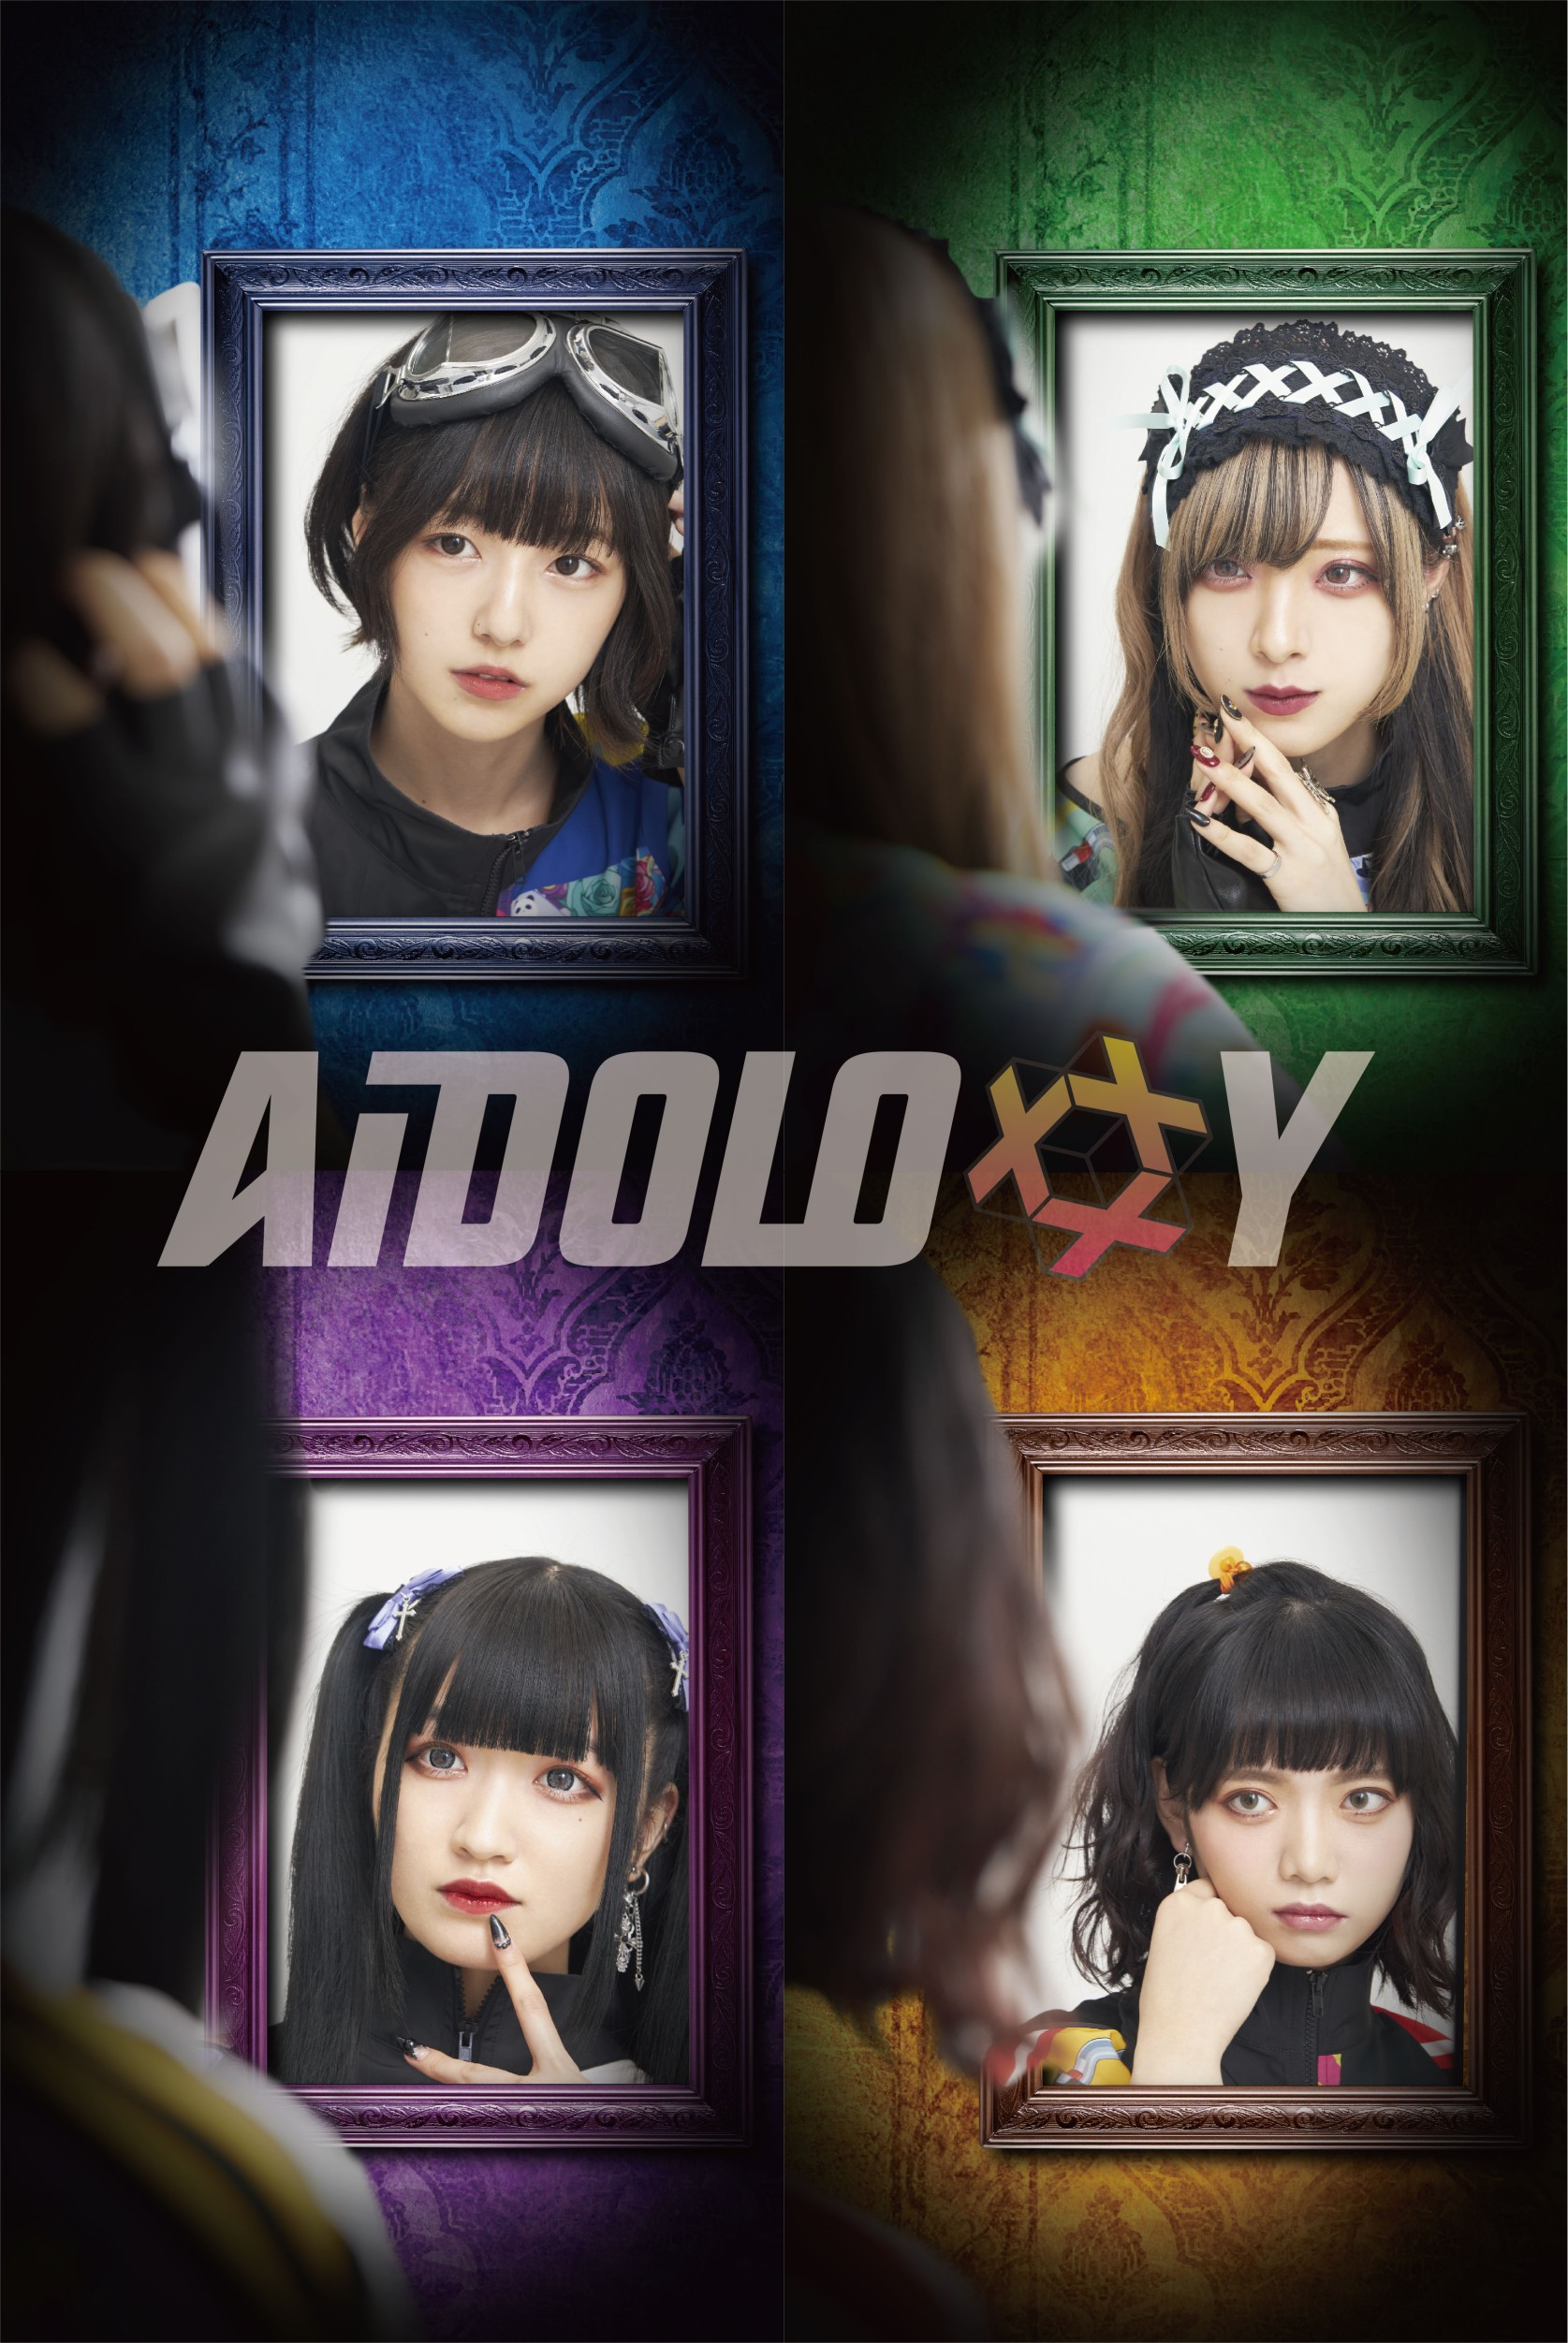 11月14日(土) GirlsComplex SP 「Autumn Idol Complex」featuring  AiDOLOXXXY 1部 AiDOLOXXXY 夜羽ななProduce「DARKNESS TEA PARTY」